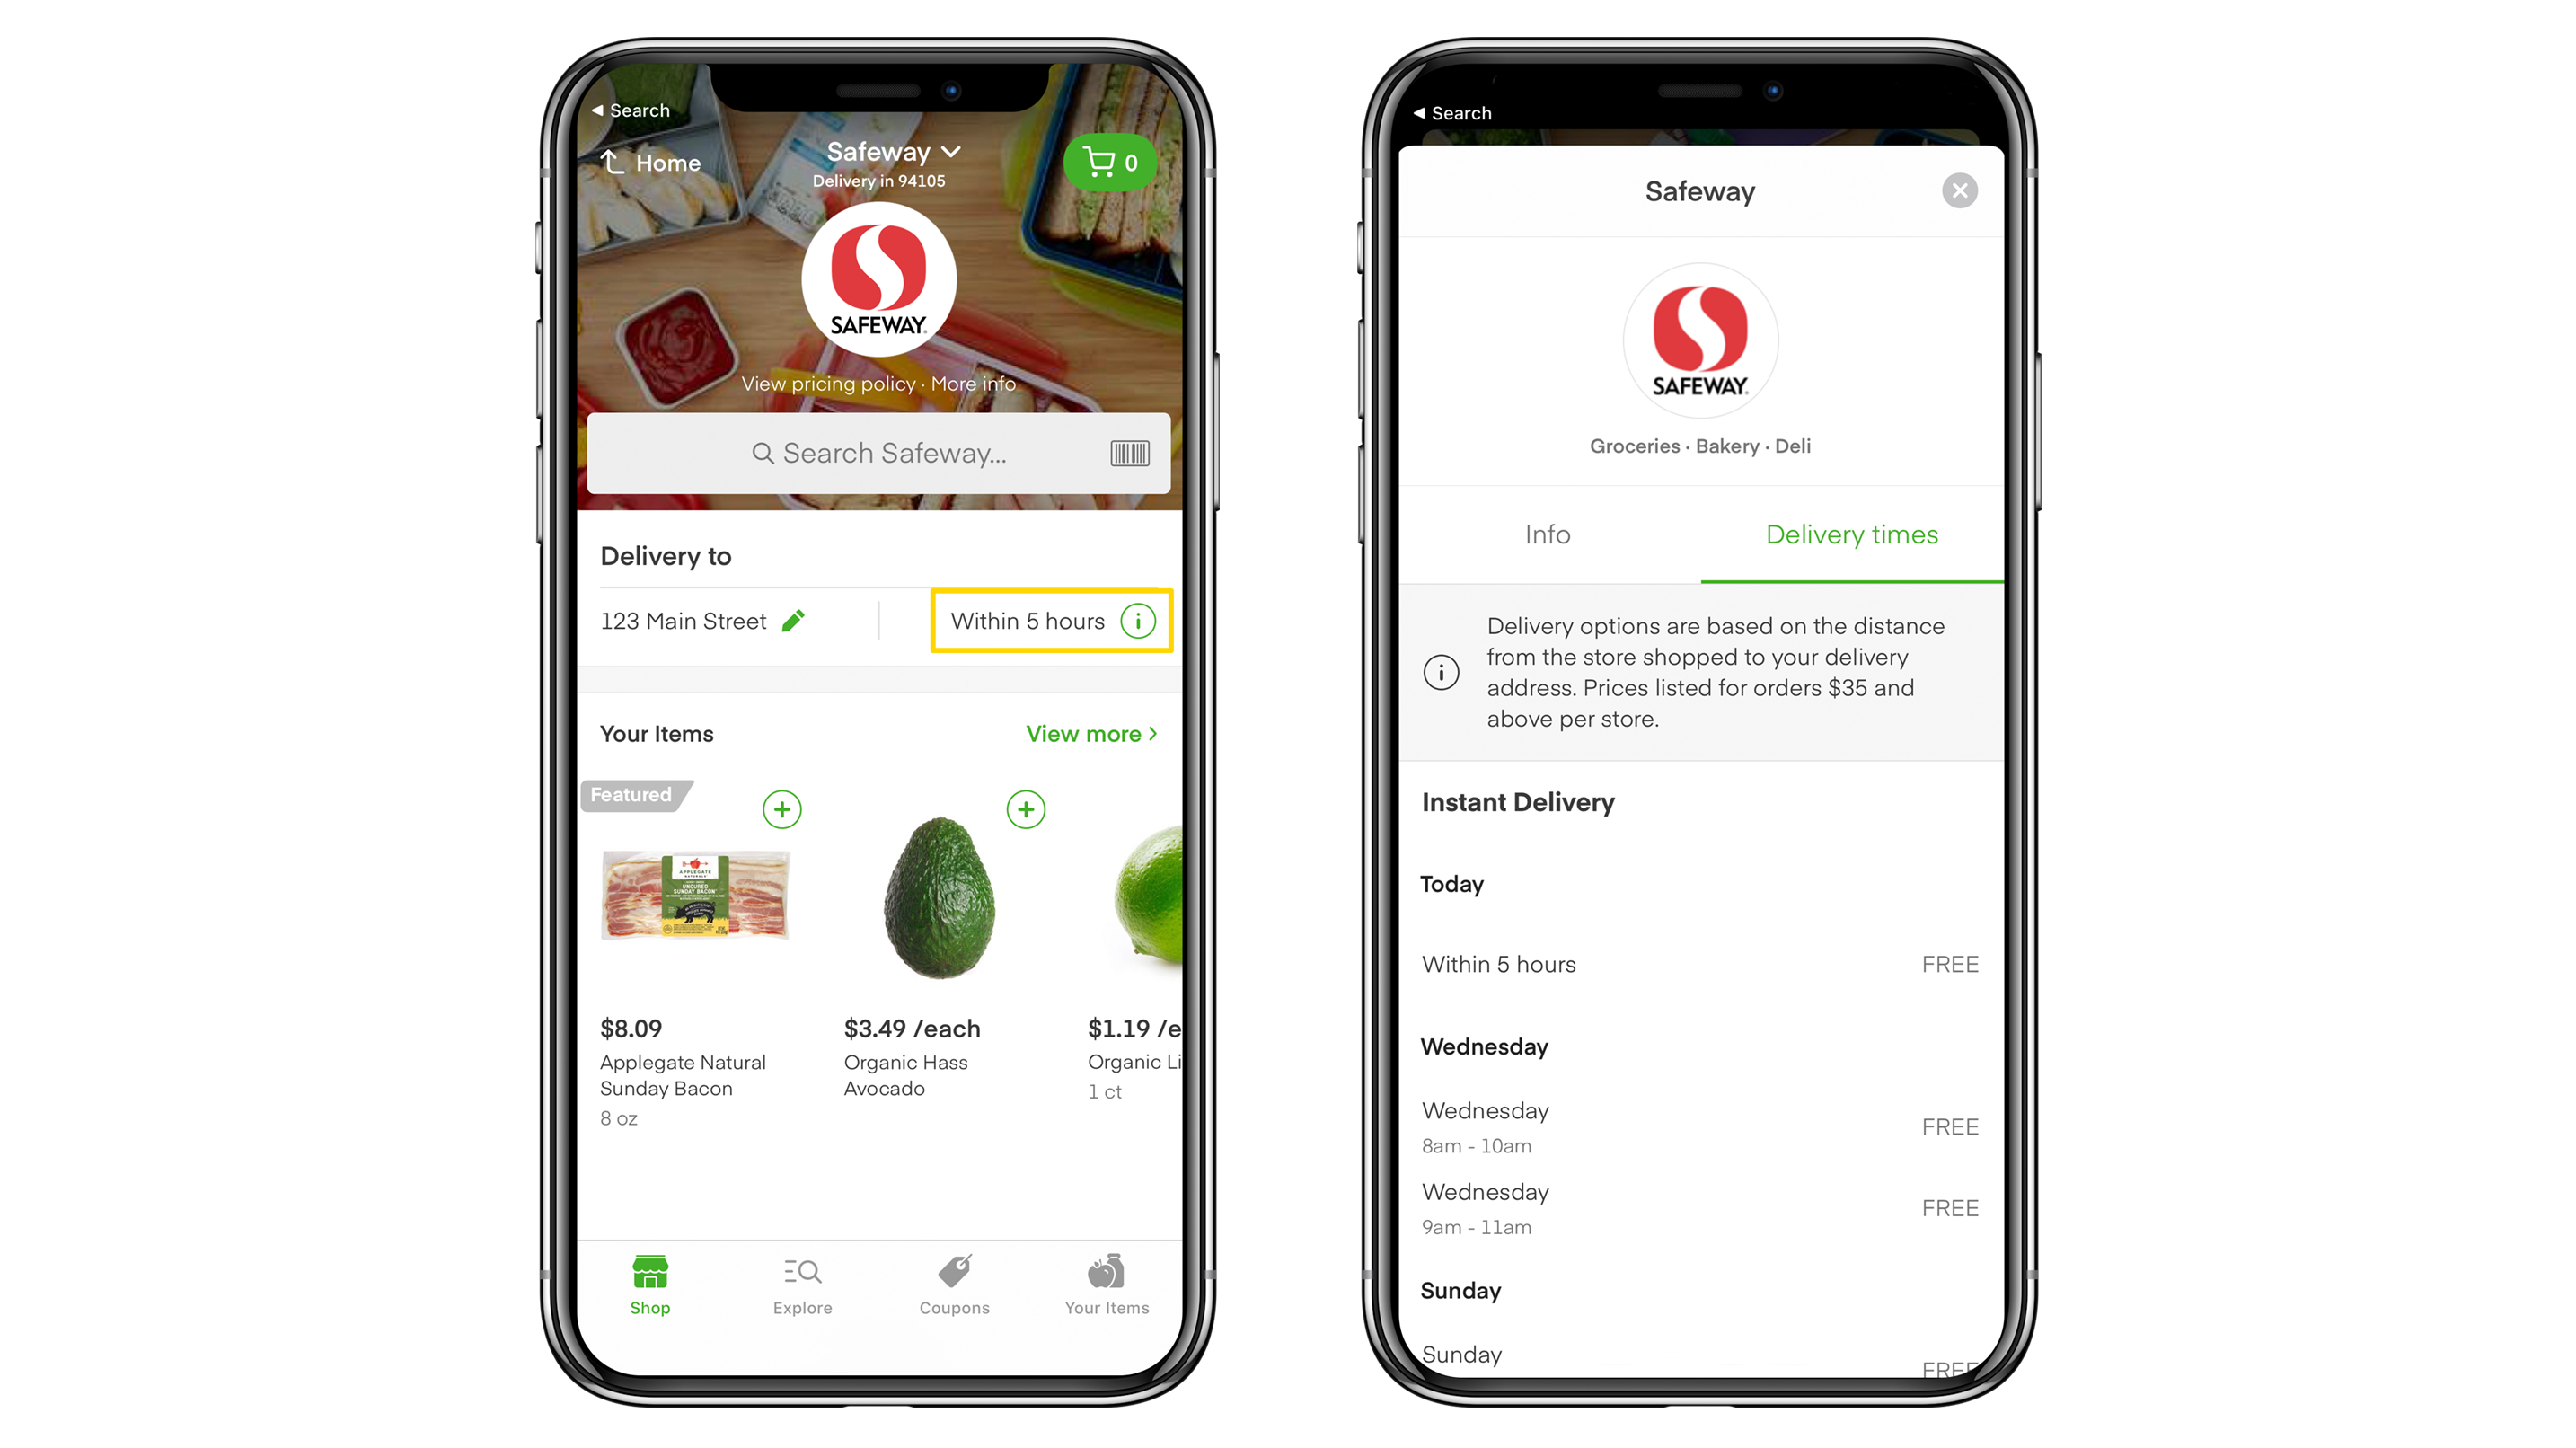 Tips For Using Instacart During This Busy And Uncertain Time By Instacart Instacart News